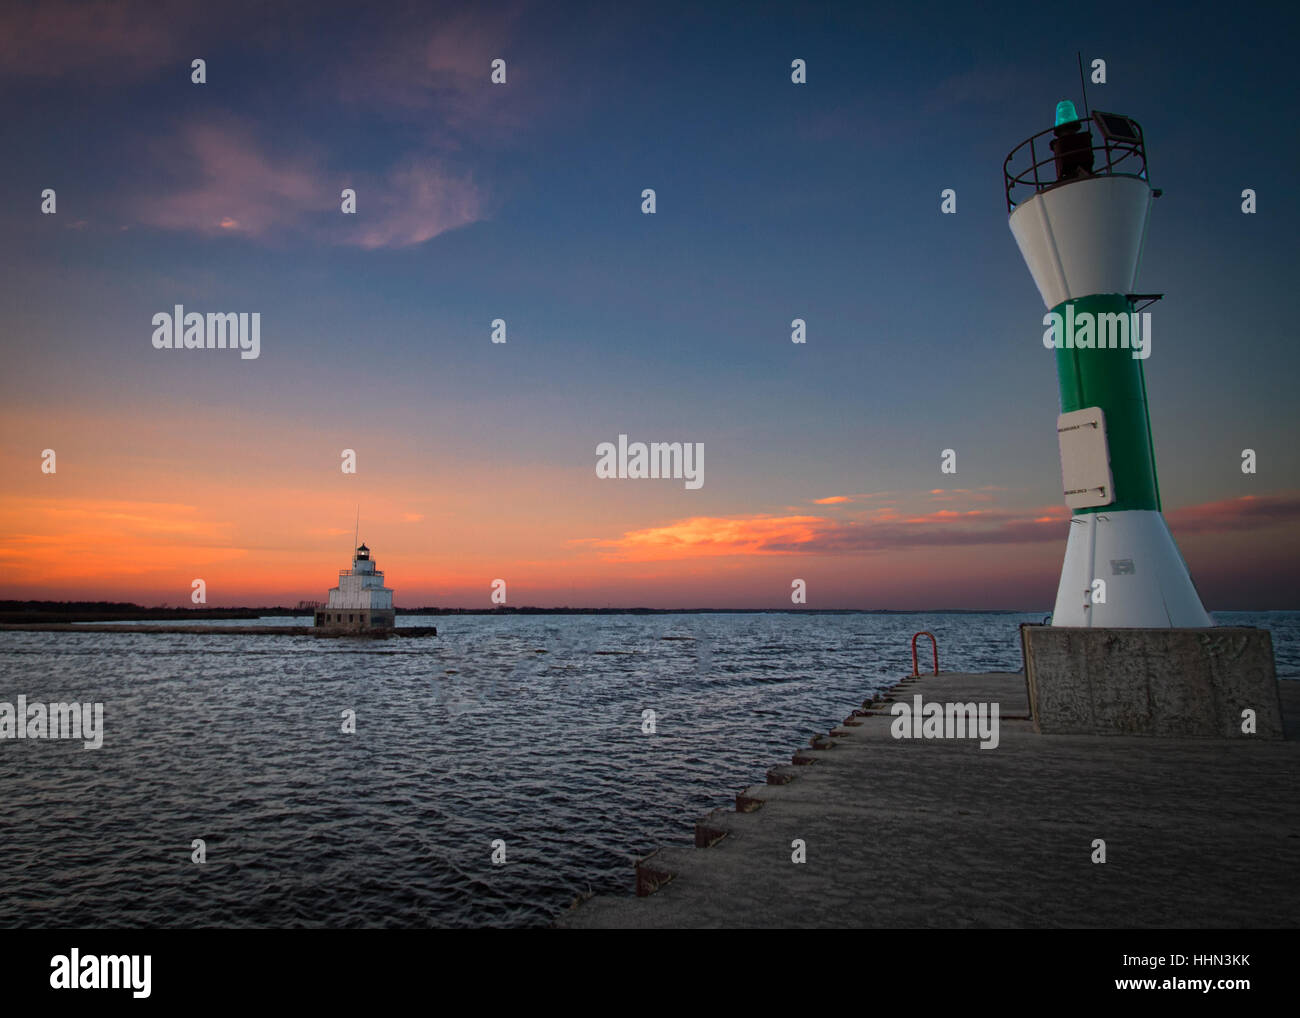 A Lake Michigan Sunset On The Sout Pier In Manitowoc, Wi Stock ...